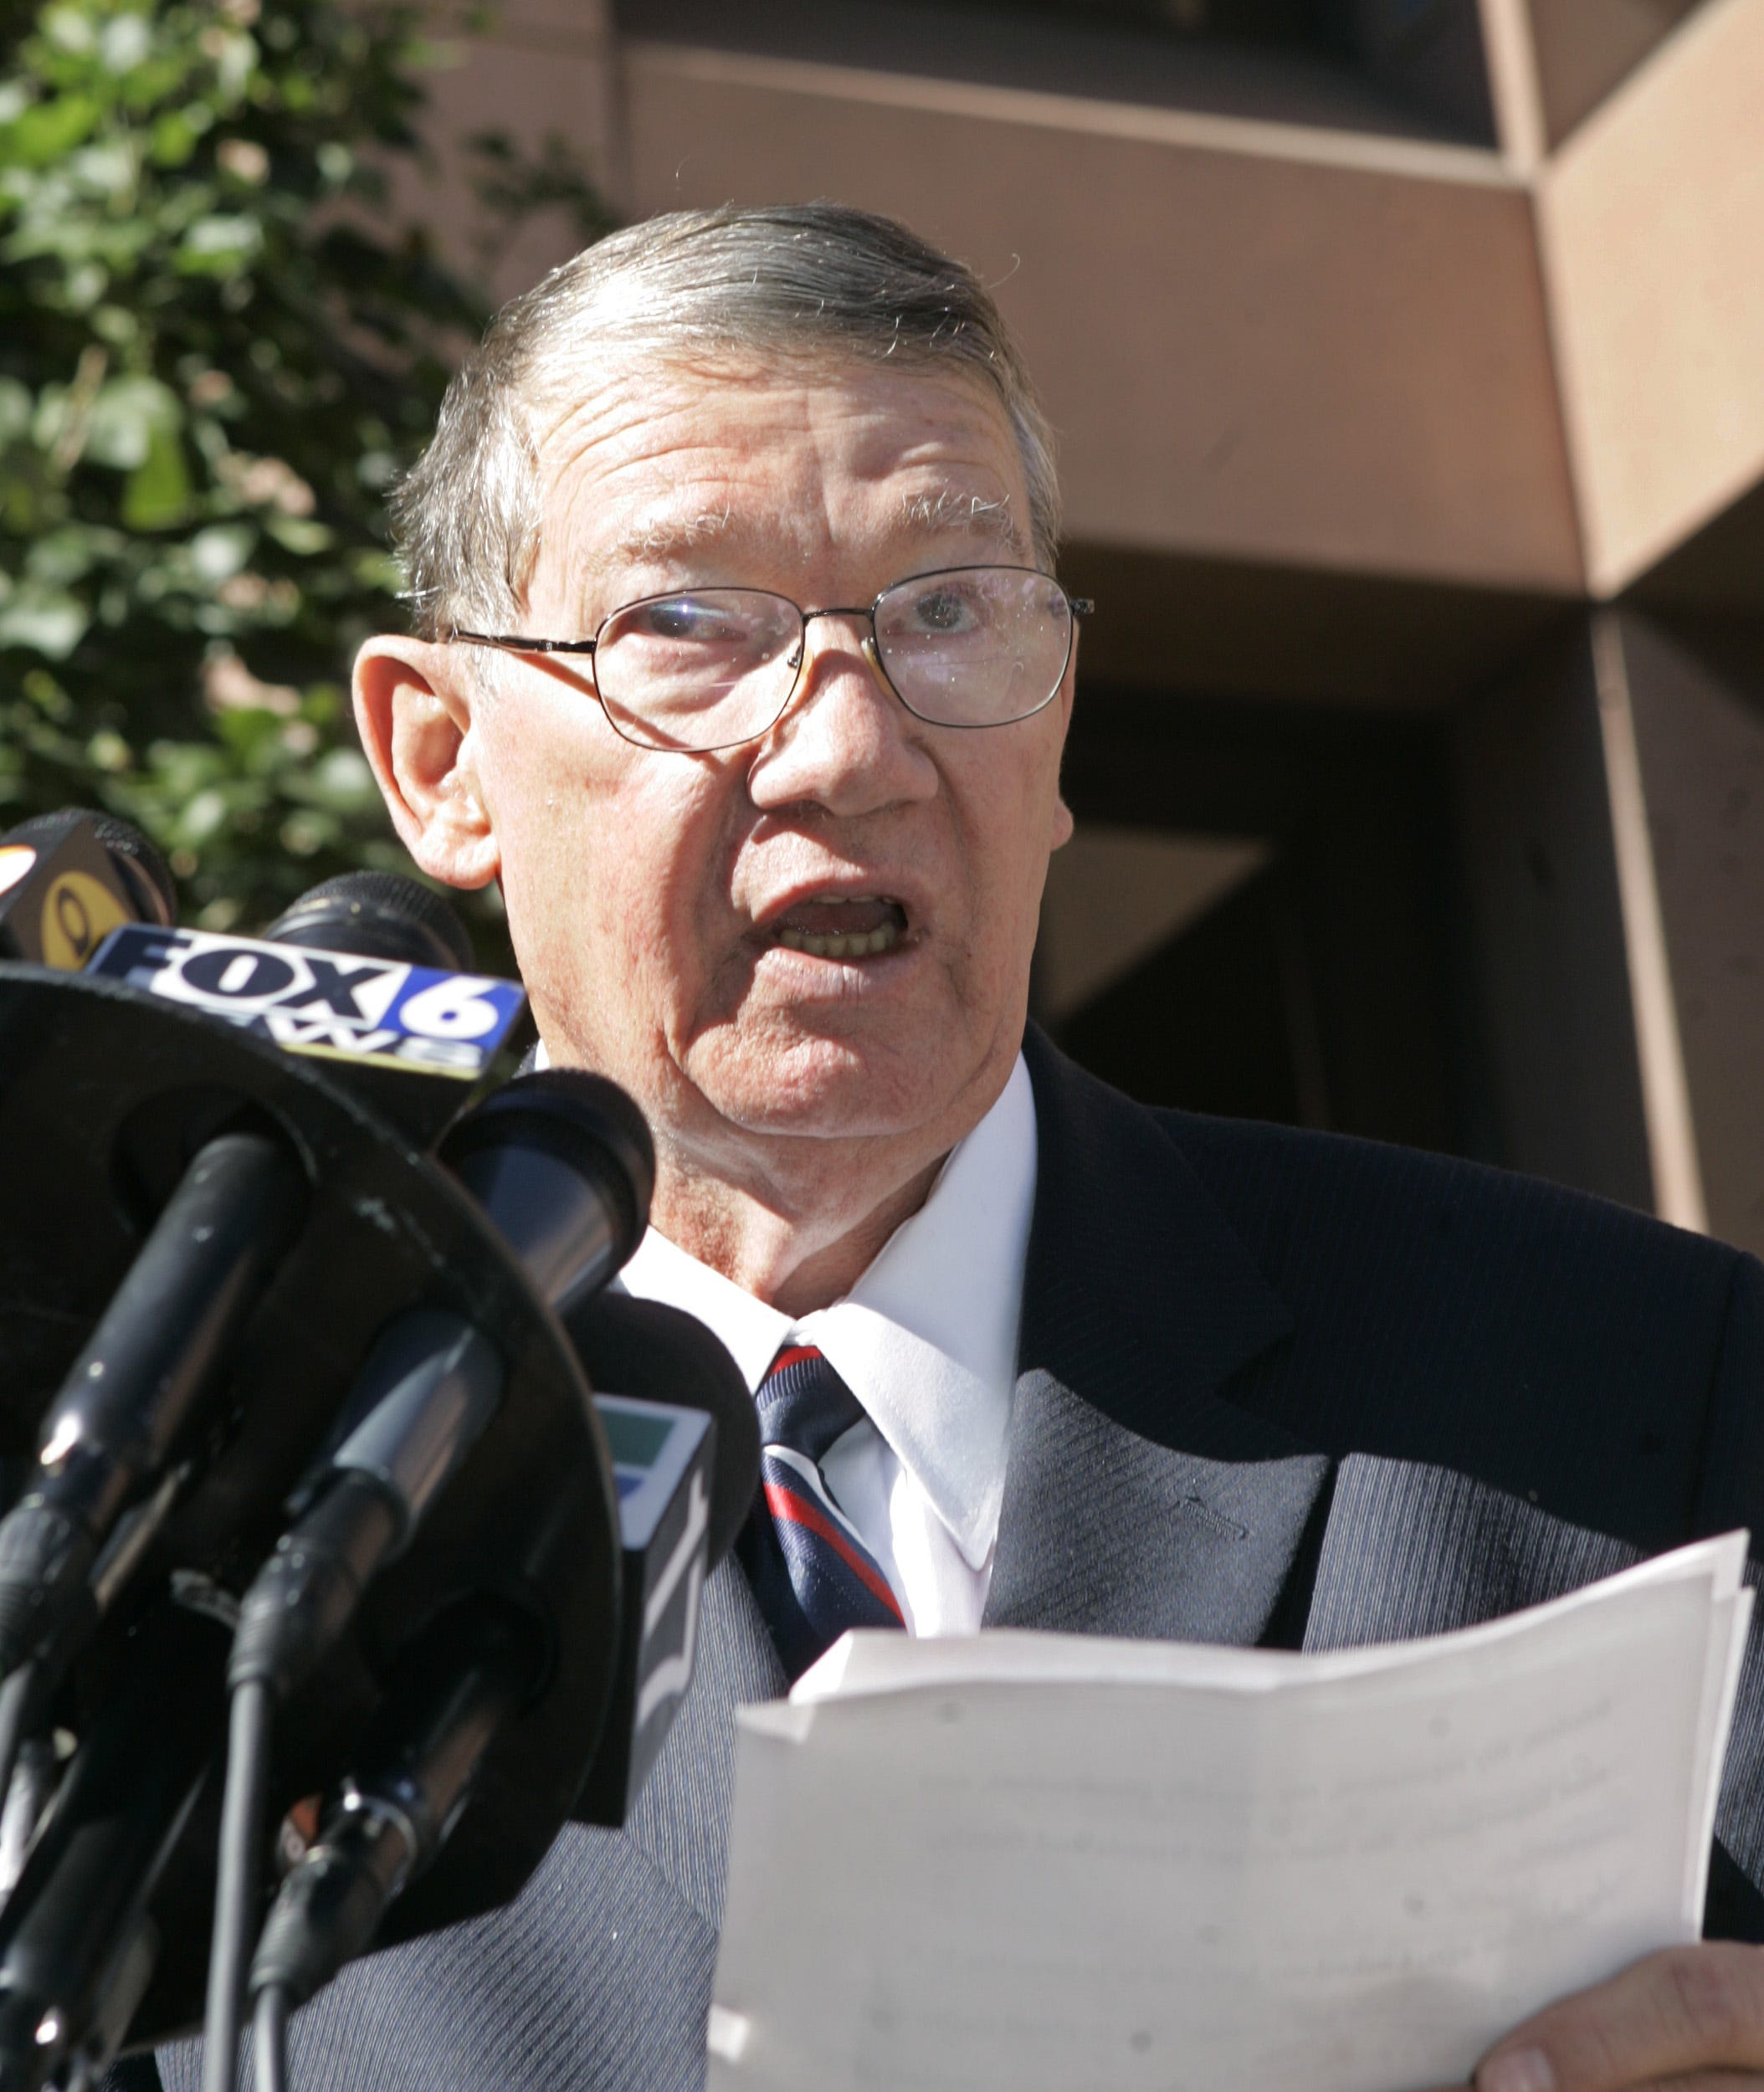 """Republican Congressman Randy """"Duke"""" Cunningham,  of the 50th district in California,  reads a statement outside the federal courthouse in San Diego Monday Nov. 28, 2005 where he pled guilty to conspiring to commit bribery, honest services fraud, and tax evasion.  (AP Photo/Lenny Ignelzi) ORG XMIT: CALI105"""